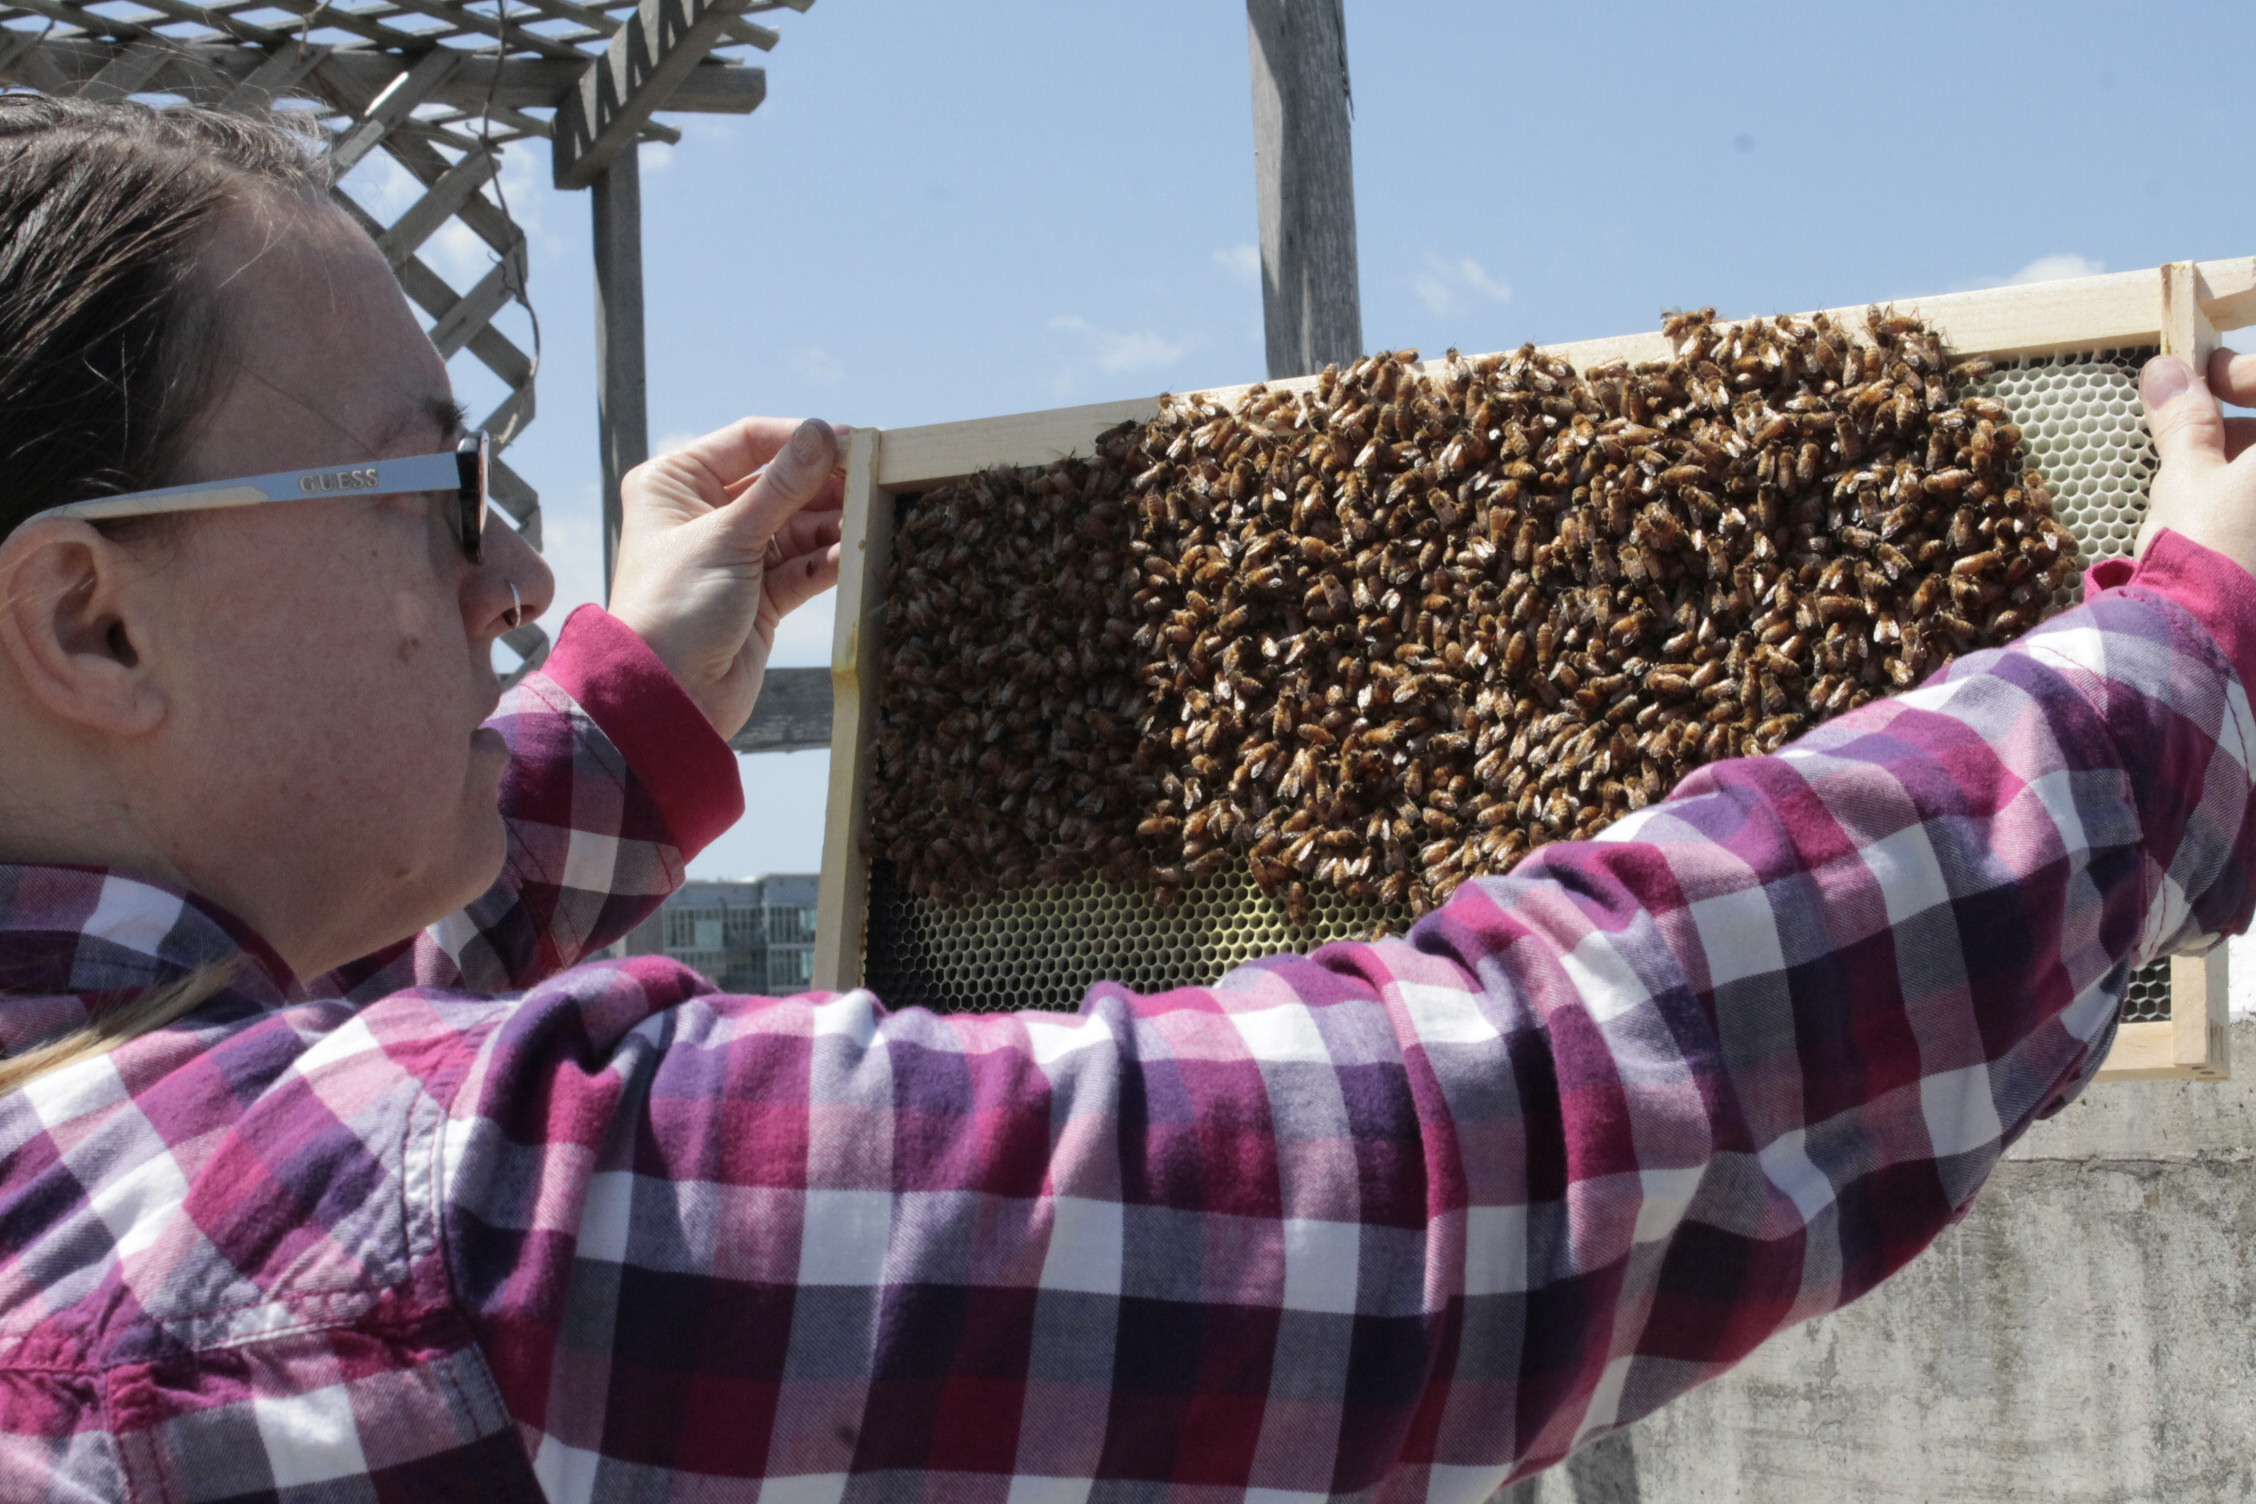 Tammy Perlmutter holding a frame of bees